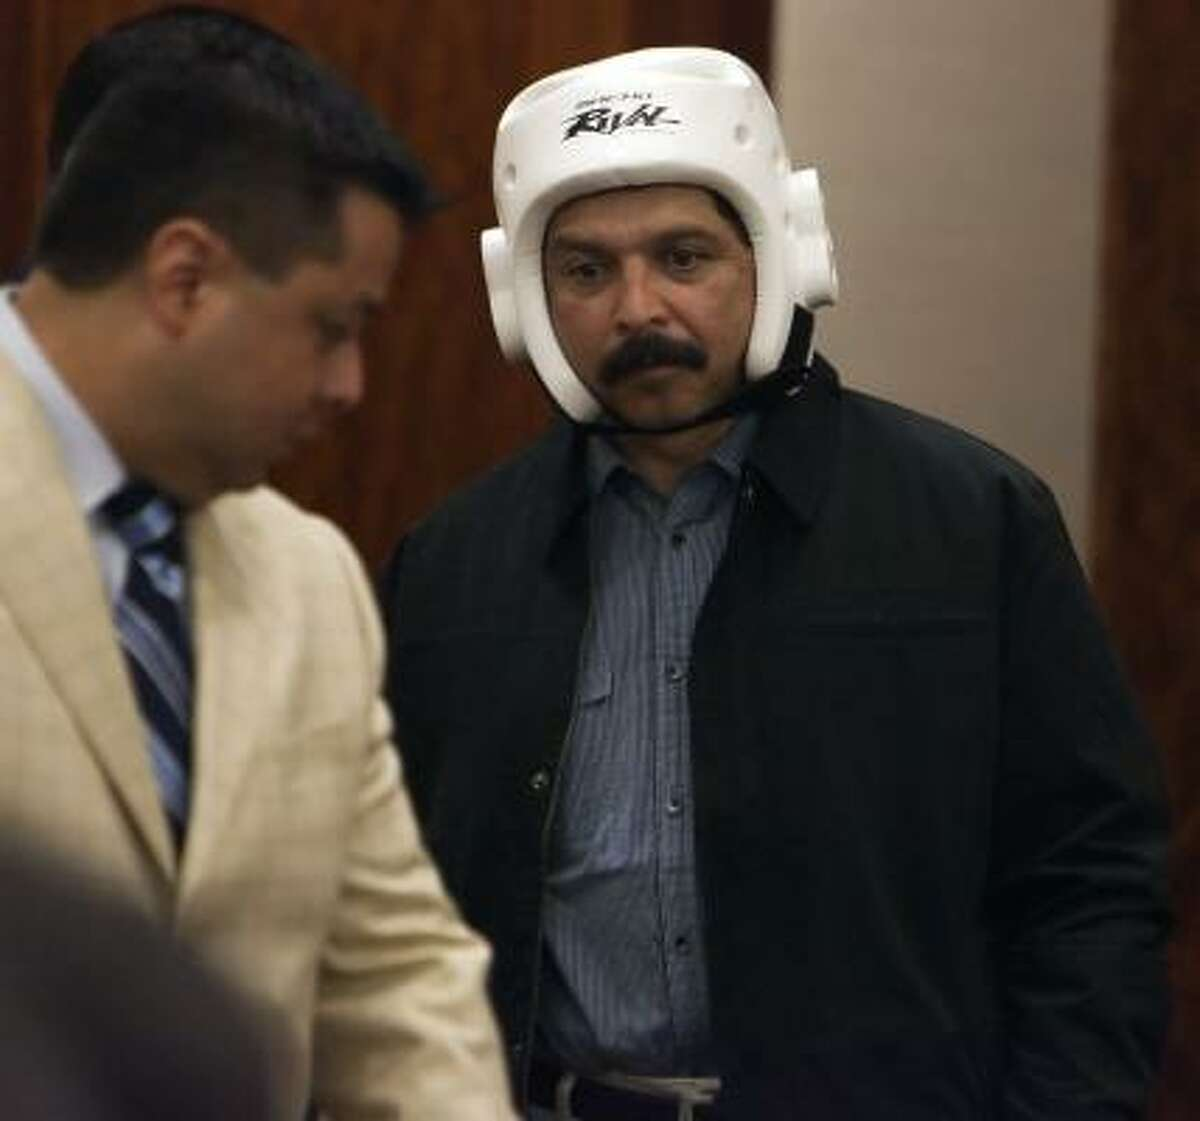 Tejano music star Emilio Navaira, in protective head gear because of severe injuries suffered in the crash of his tour bus, pleaded guilty to DWI in a Houston court.